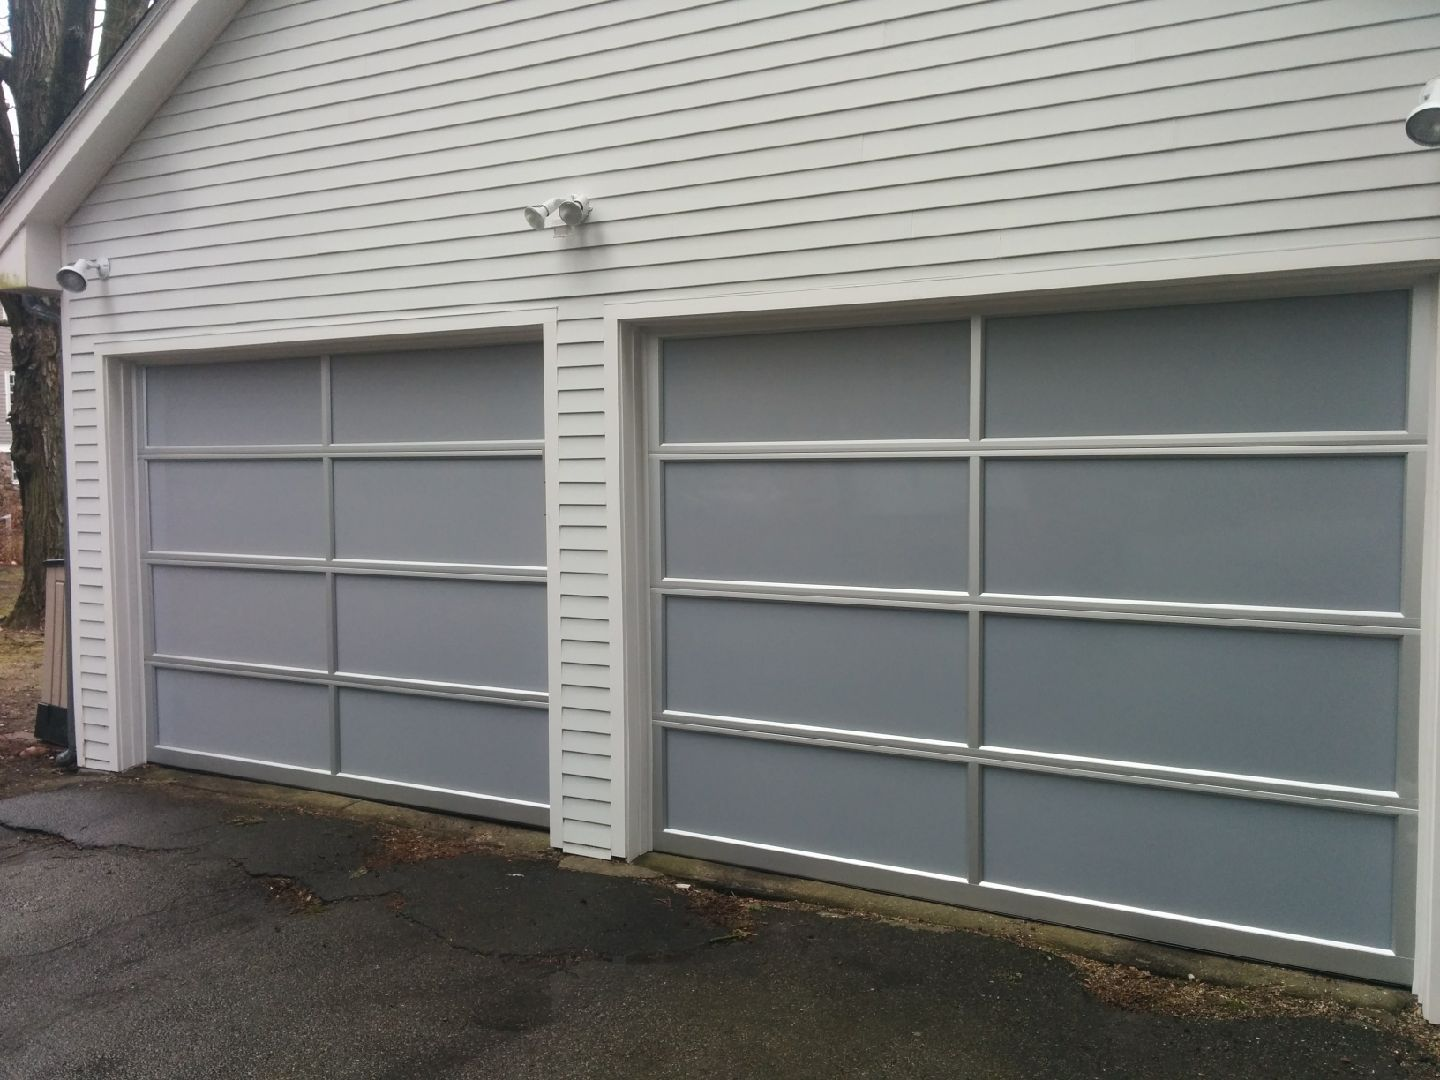 Avante White Acrylic Glass Collins Overhead Door. Everett Garage Door Repair